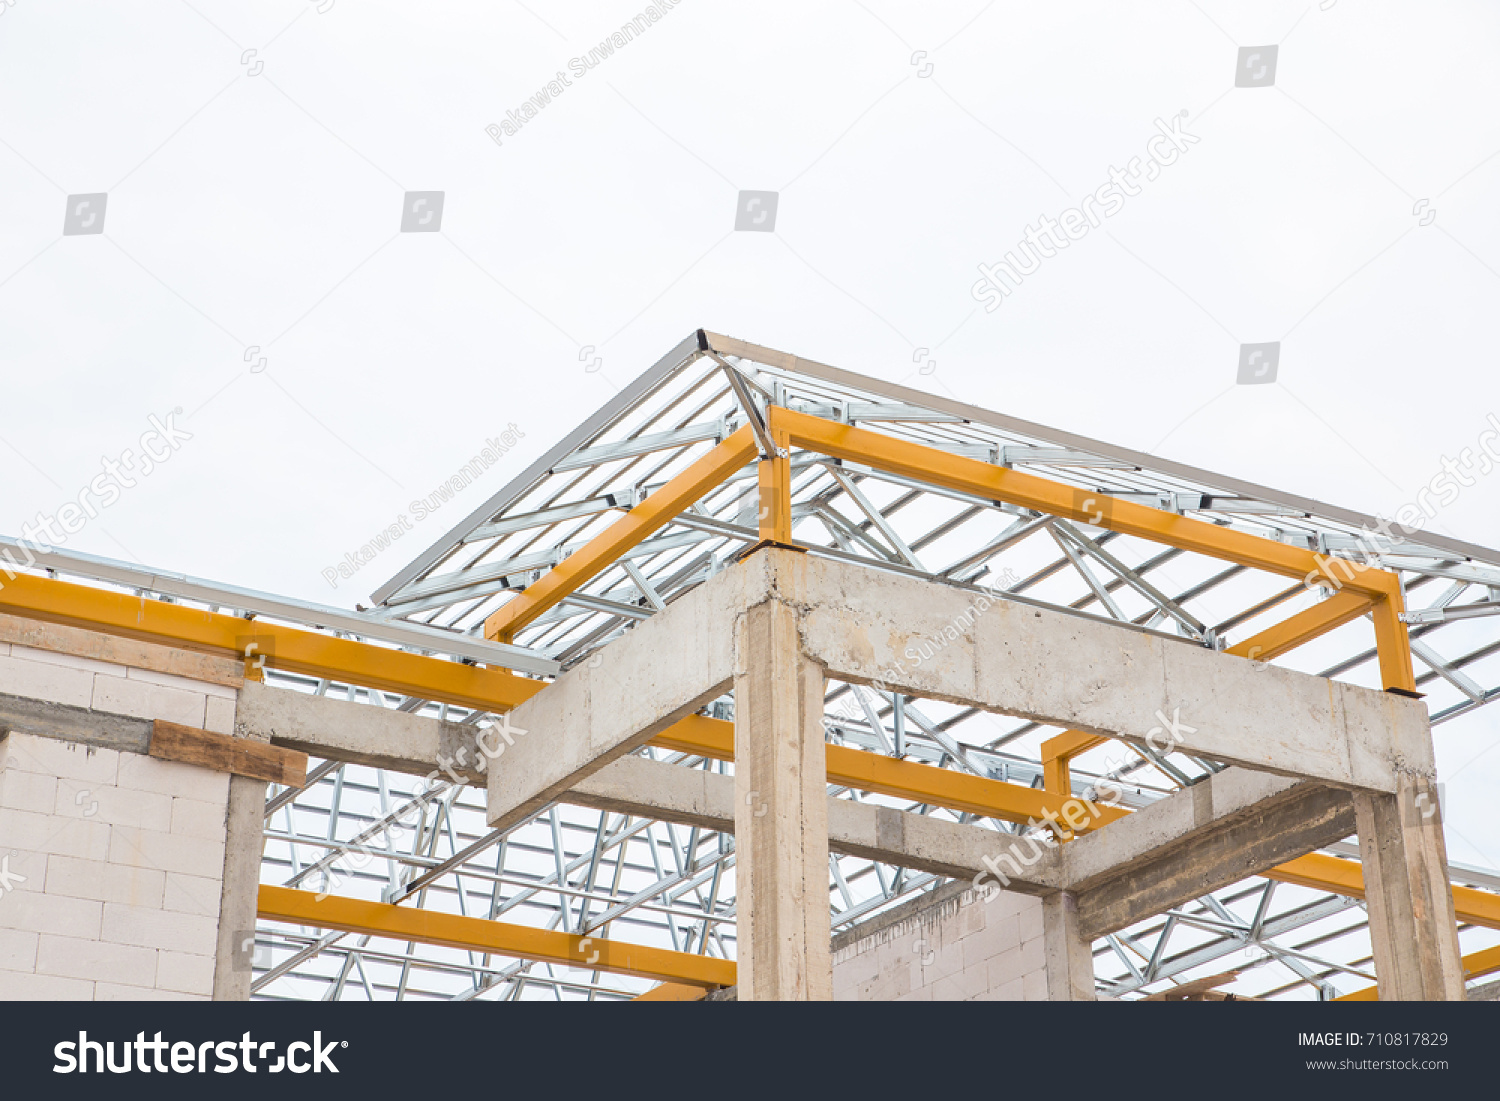 Structure of truss prefabricated steel roof frame in building ...